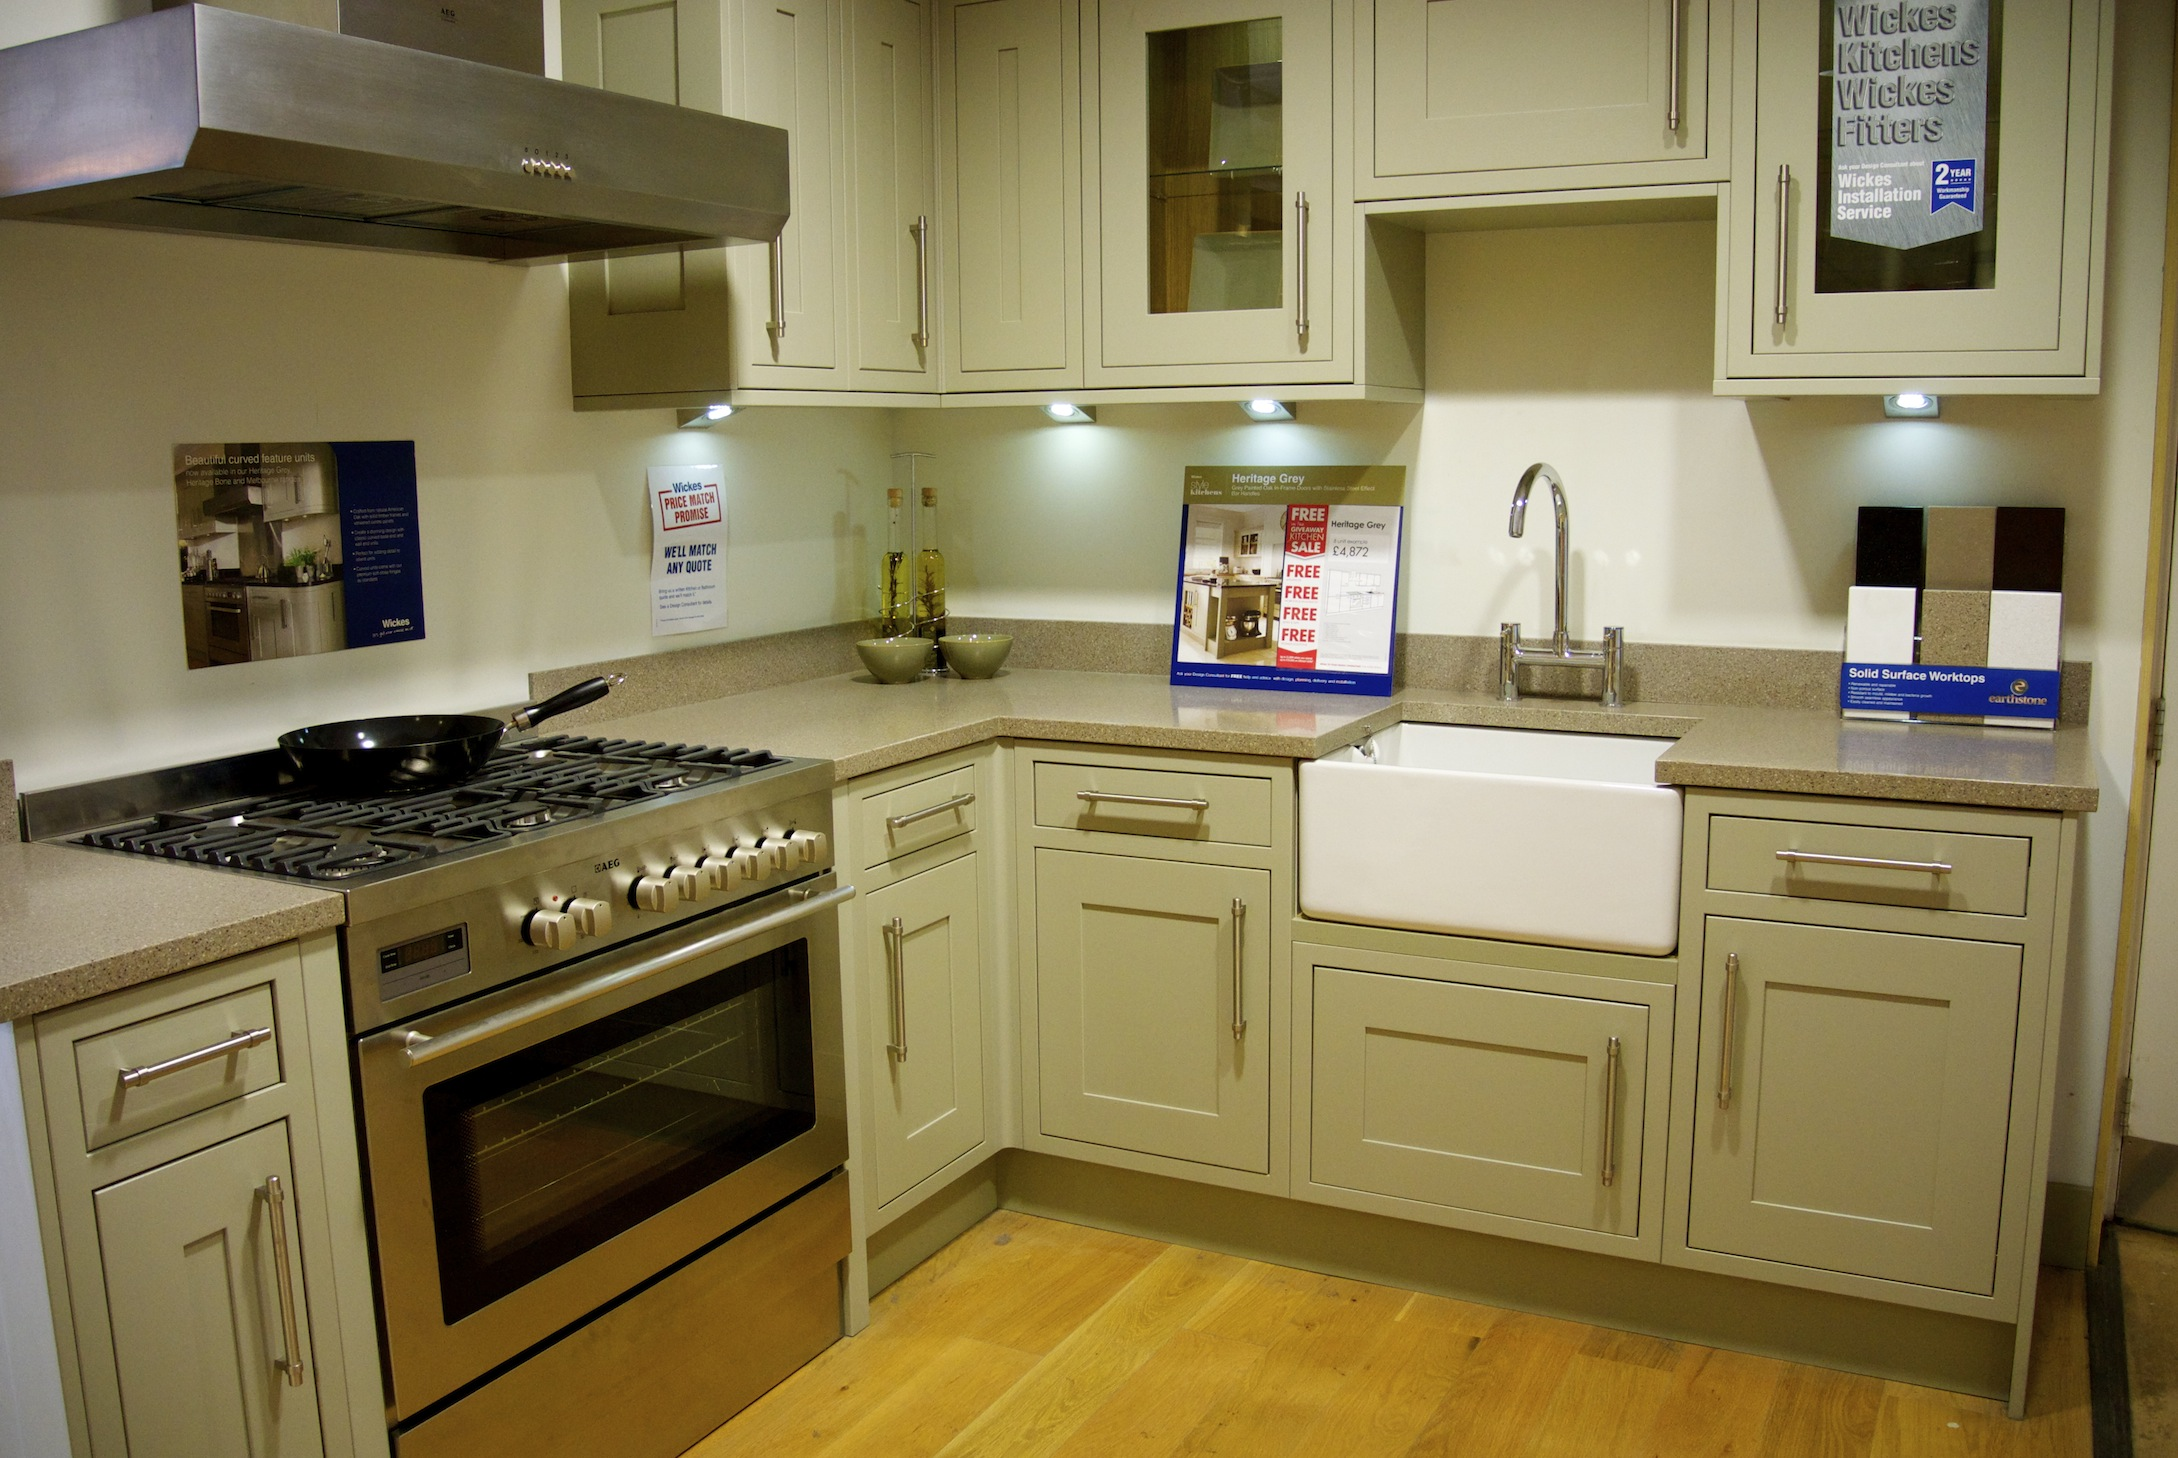 Free Kitchen Design Edinburgh Wickes Kichens Untold Blisses